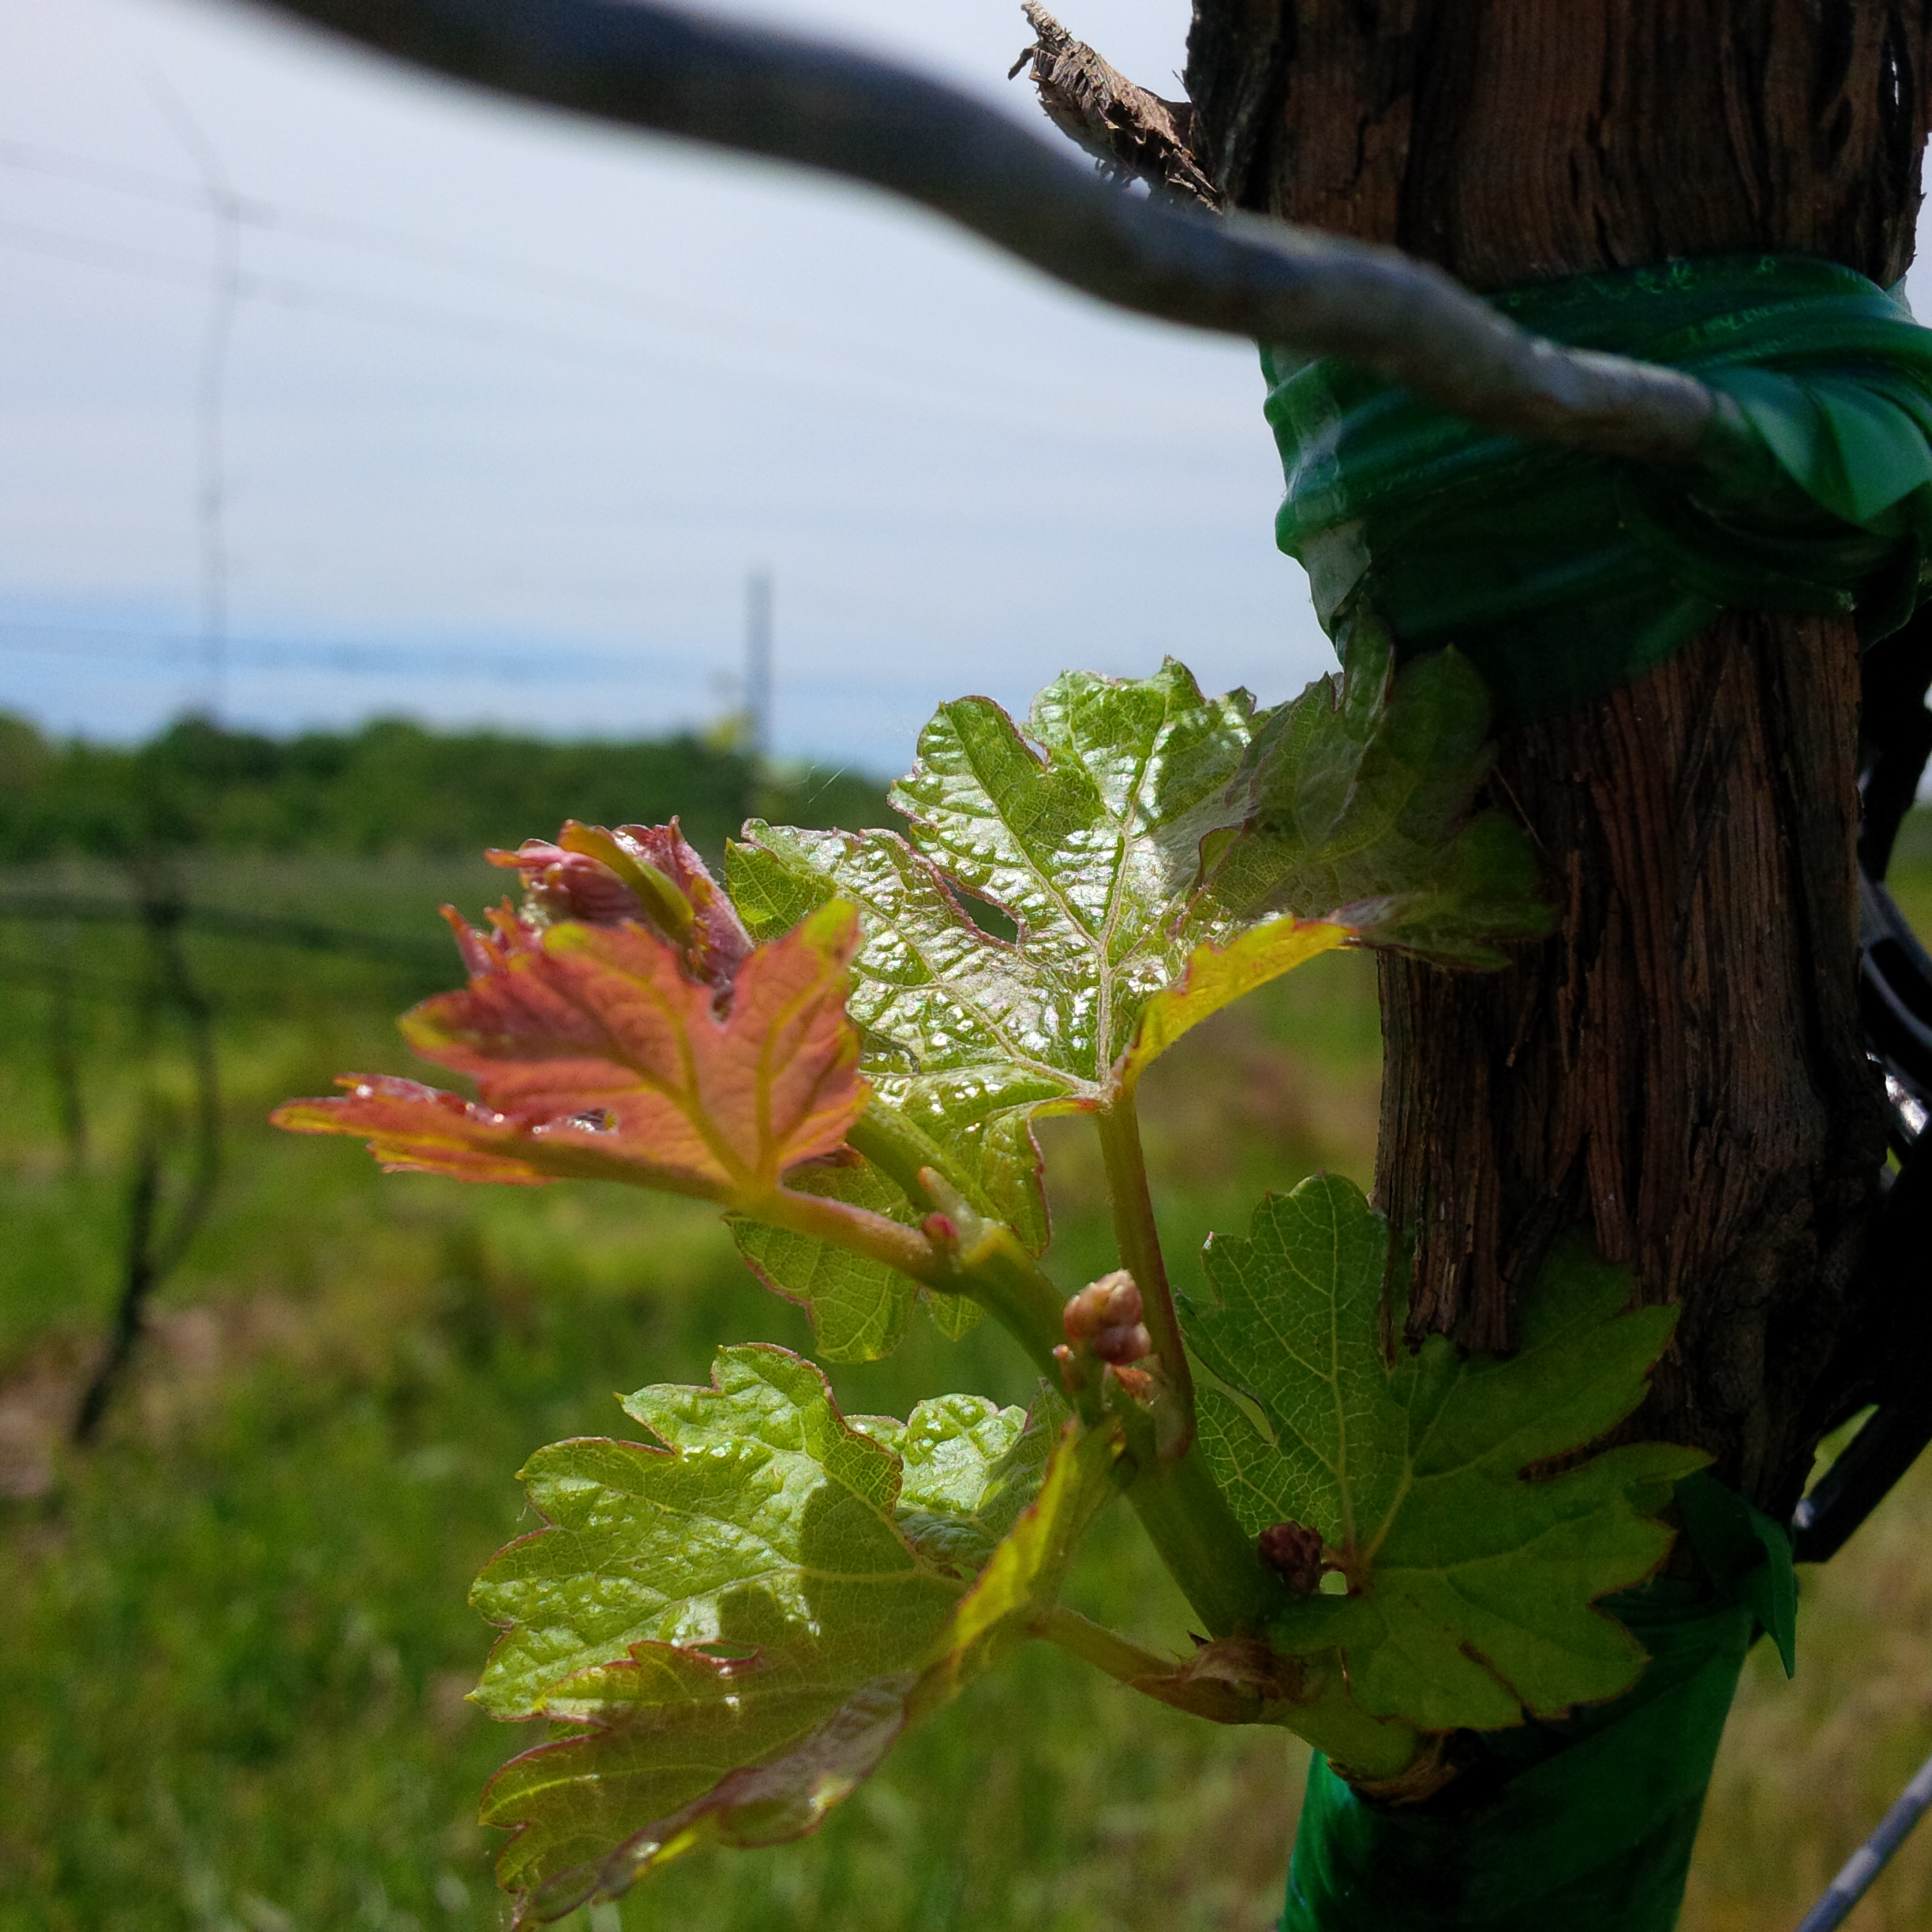 "From northern Italy … - Refosco dal Peduncolo Rosso, or simply ""Refosco"" as it is commonly referred to, is the name of a grape and the red wine produced from that grape. This photo shows the bright Refosco leaves growing from a chip bud graft within the Röbller vineyard."